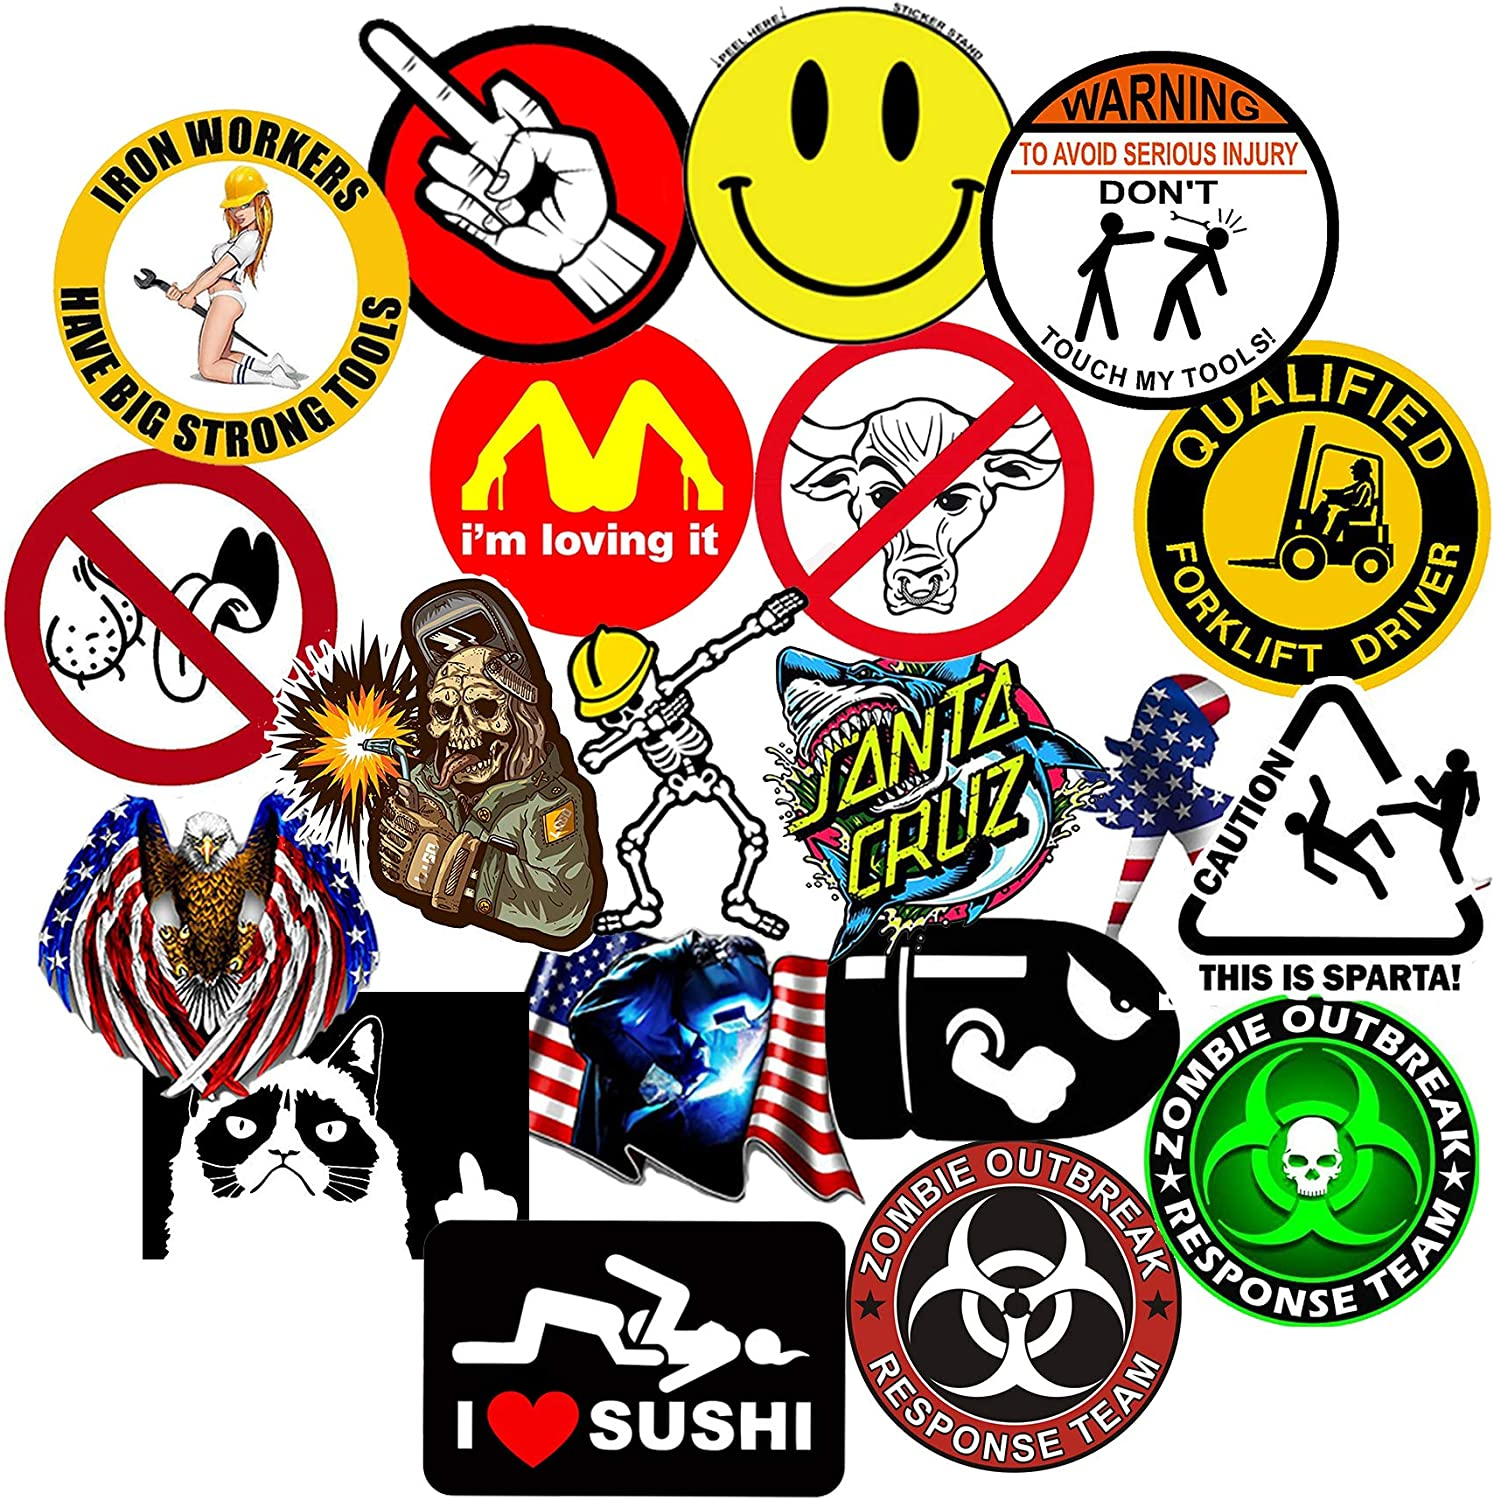 Lunch Box 4x4Large Stickers 20-Pcs Funny Decals / Crude Humor Hilarious Hard Hat Prank Decal Joke Sticker Funny Laugh Construction LOL 100/% Vinyl GTOTd Stickers for Union Hard Hat Tool Chest